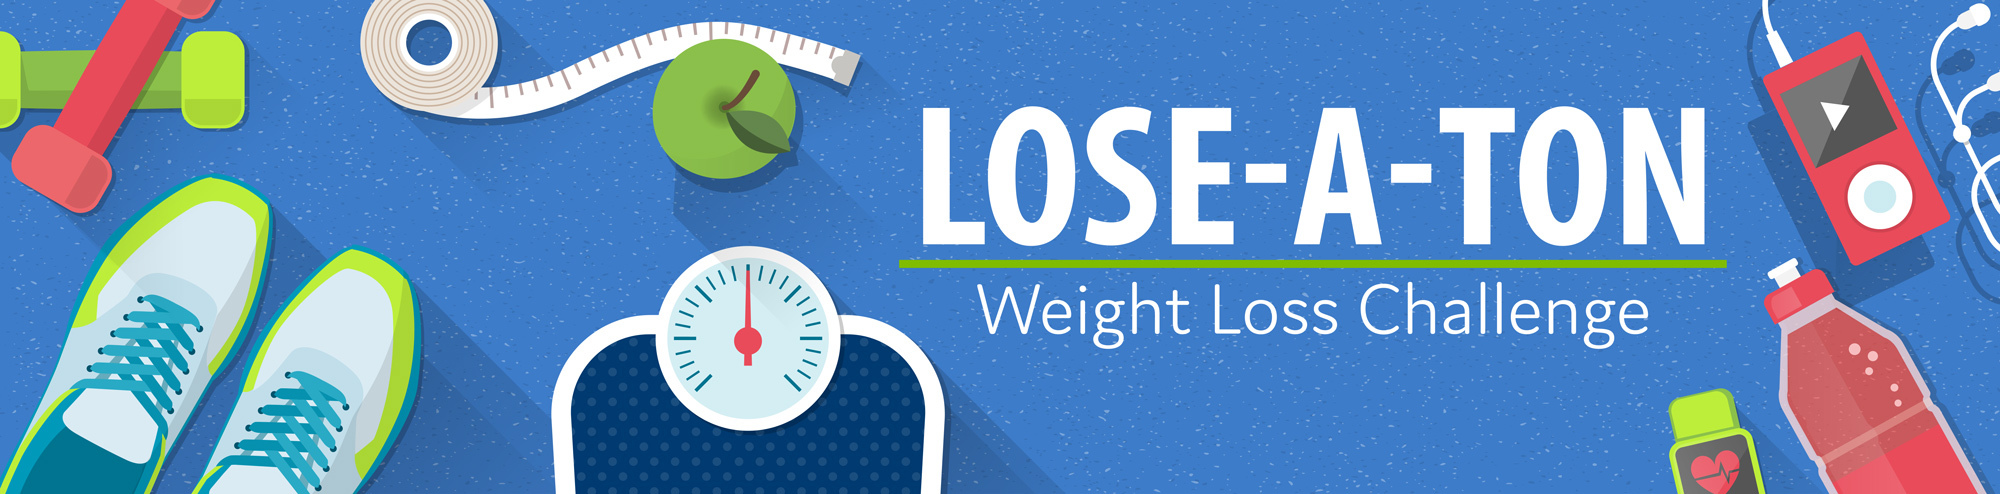 Lose-A-Ton banner with work-out equipment